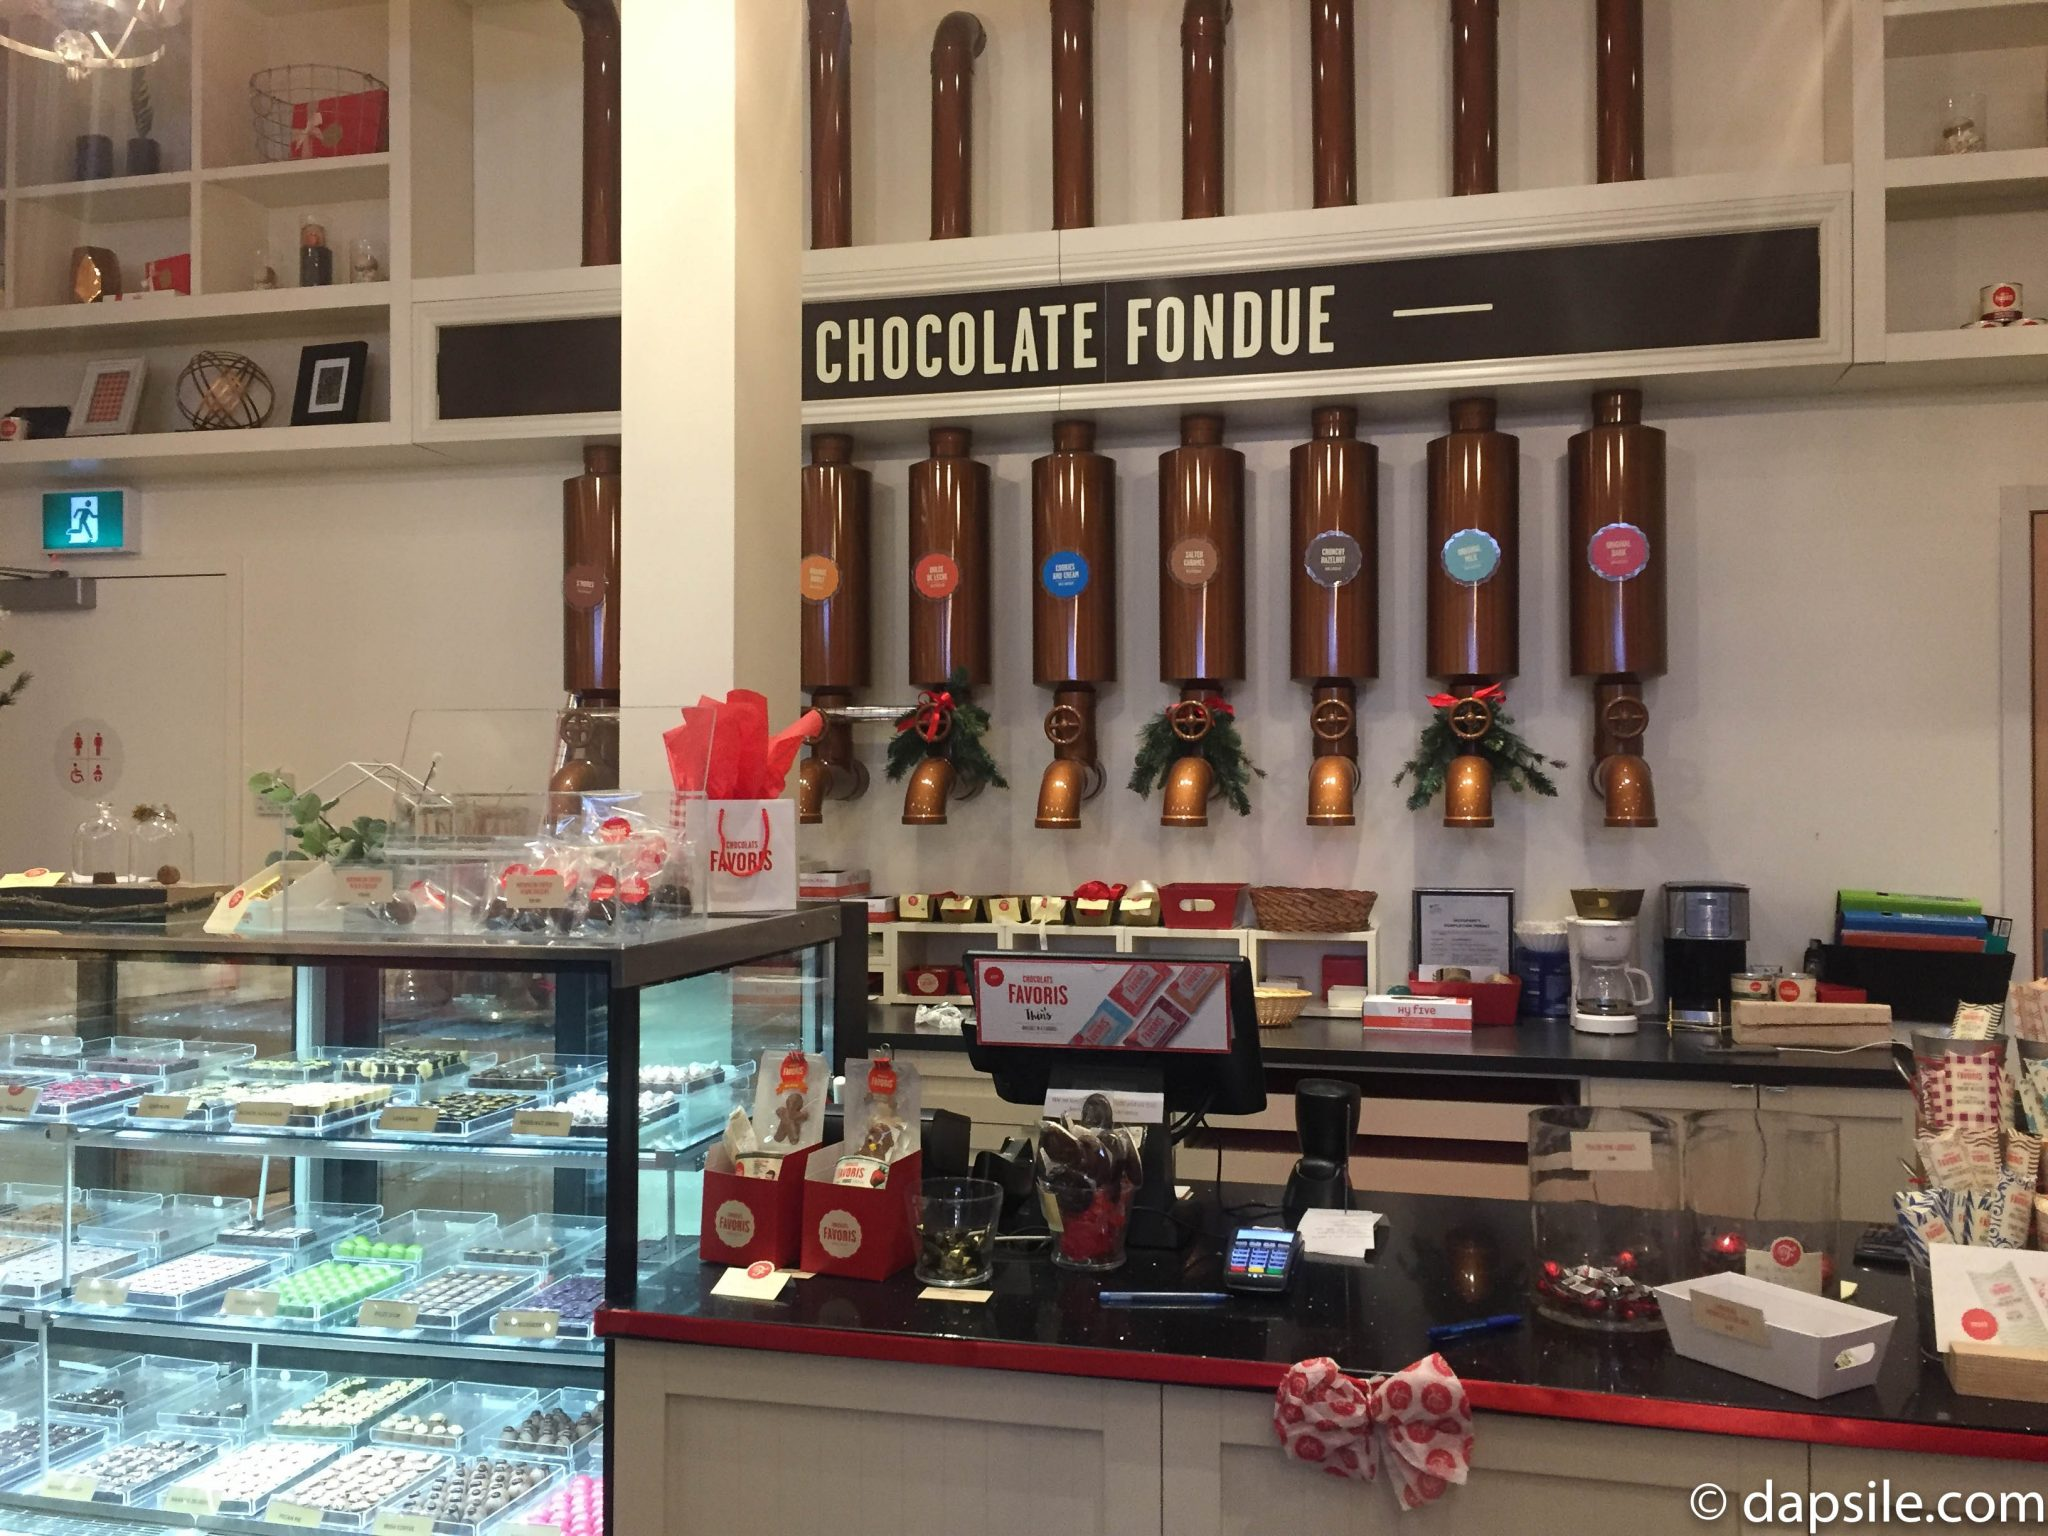 Things to do in Victoria Chocolats Favoris Wall of Chocolates and Fondue